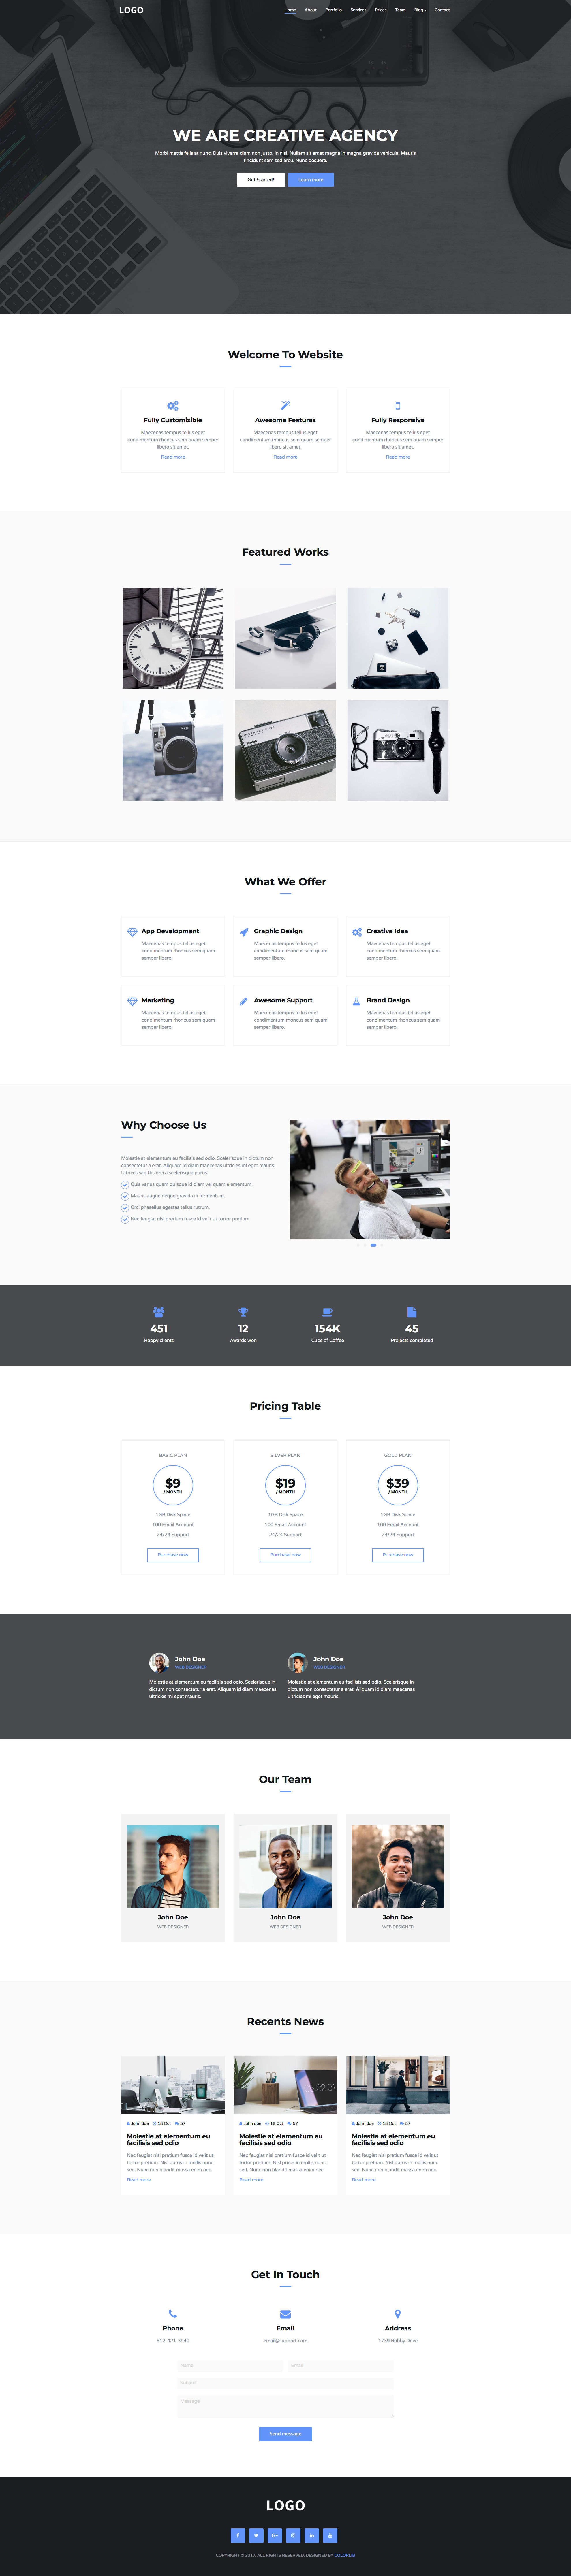 Creative Agency is a modern and minimal free responsive HTML5 one page HTML5 Bootstrap website template. As it names implies, is a free website template for creative, digital and media agencies of any kind. Creative Agency free HTML template is fully responsive, retina ready and comes with the popular Bootstrap CSS Grid System.